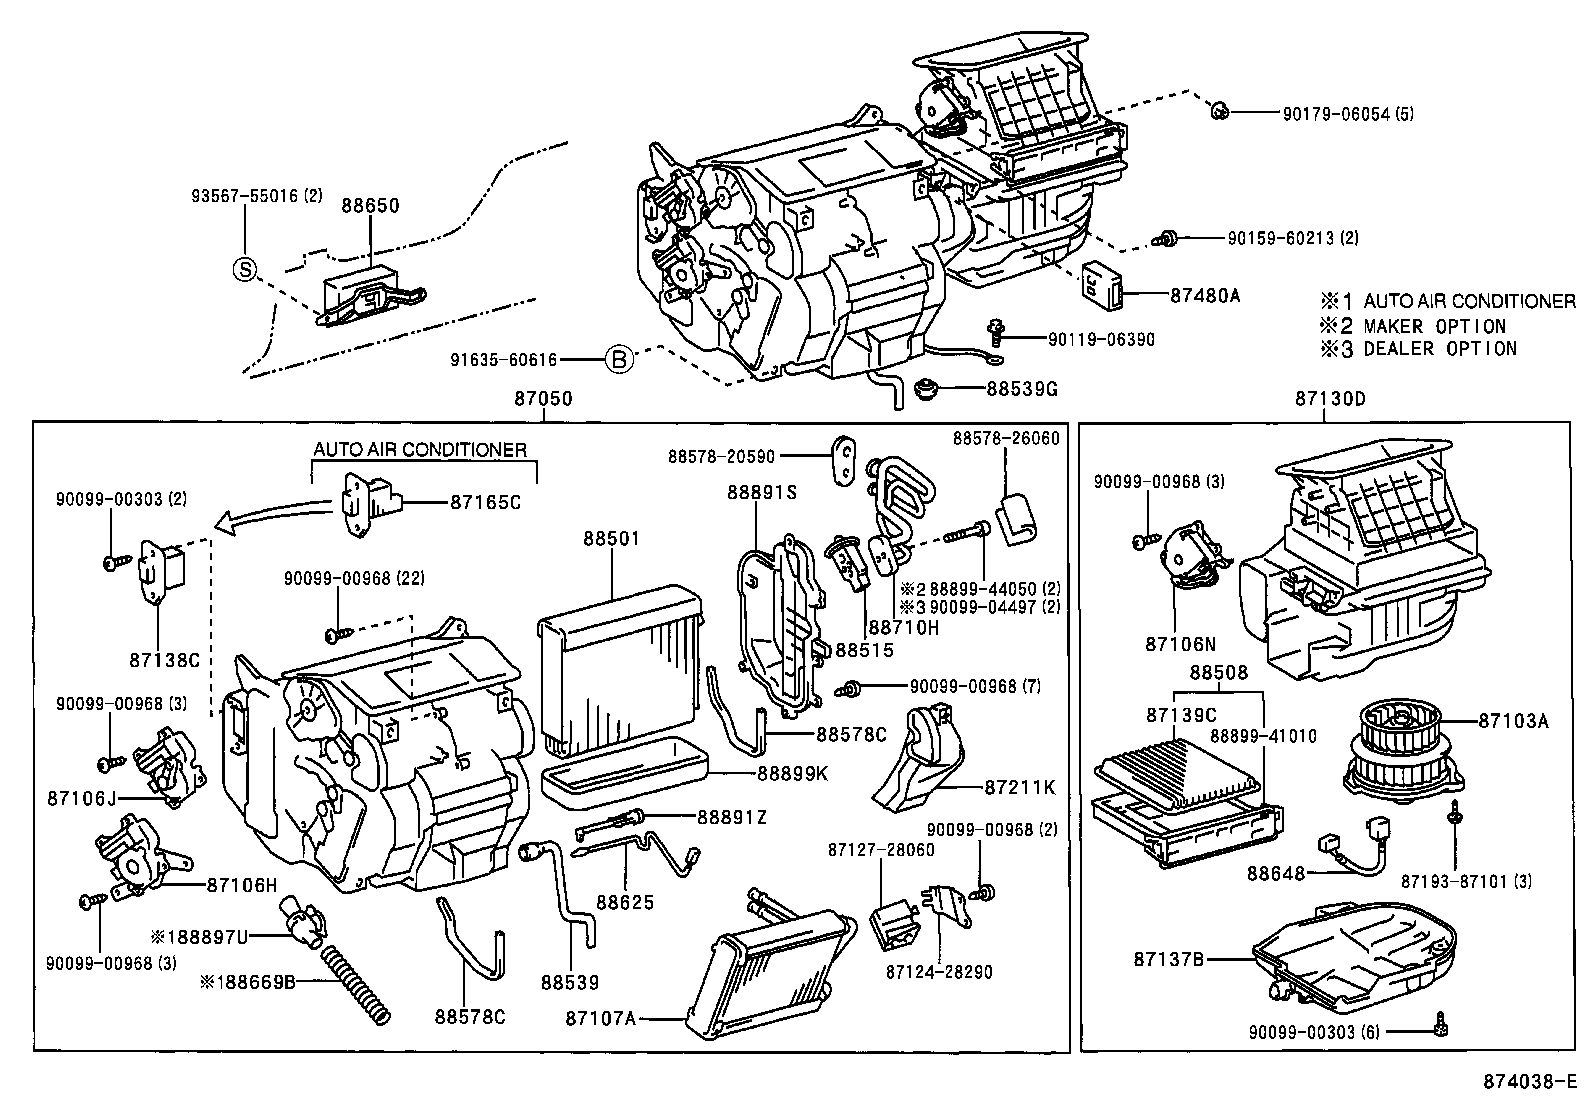 Toyota Previa Air Conditioning Wiring Diagram Electrical Estima Download Heating Cooler Unitfront Illust No 1 Of 3 Nordyne Handler